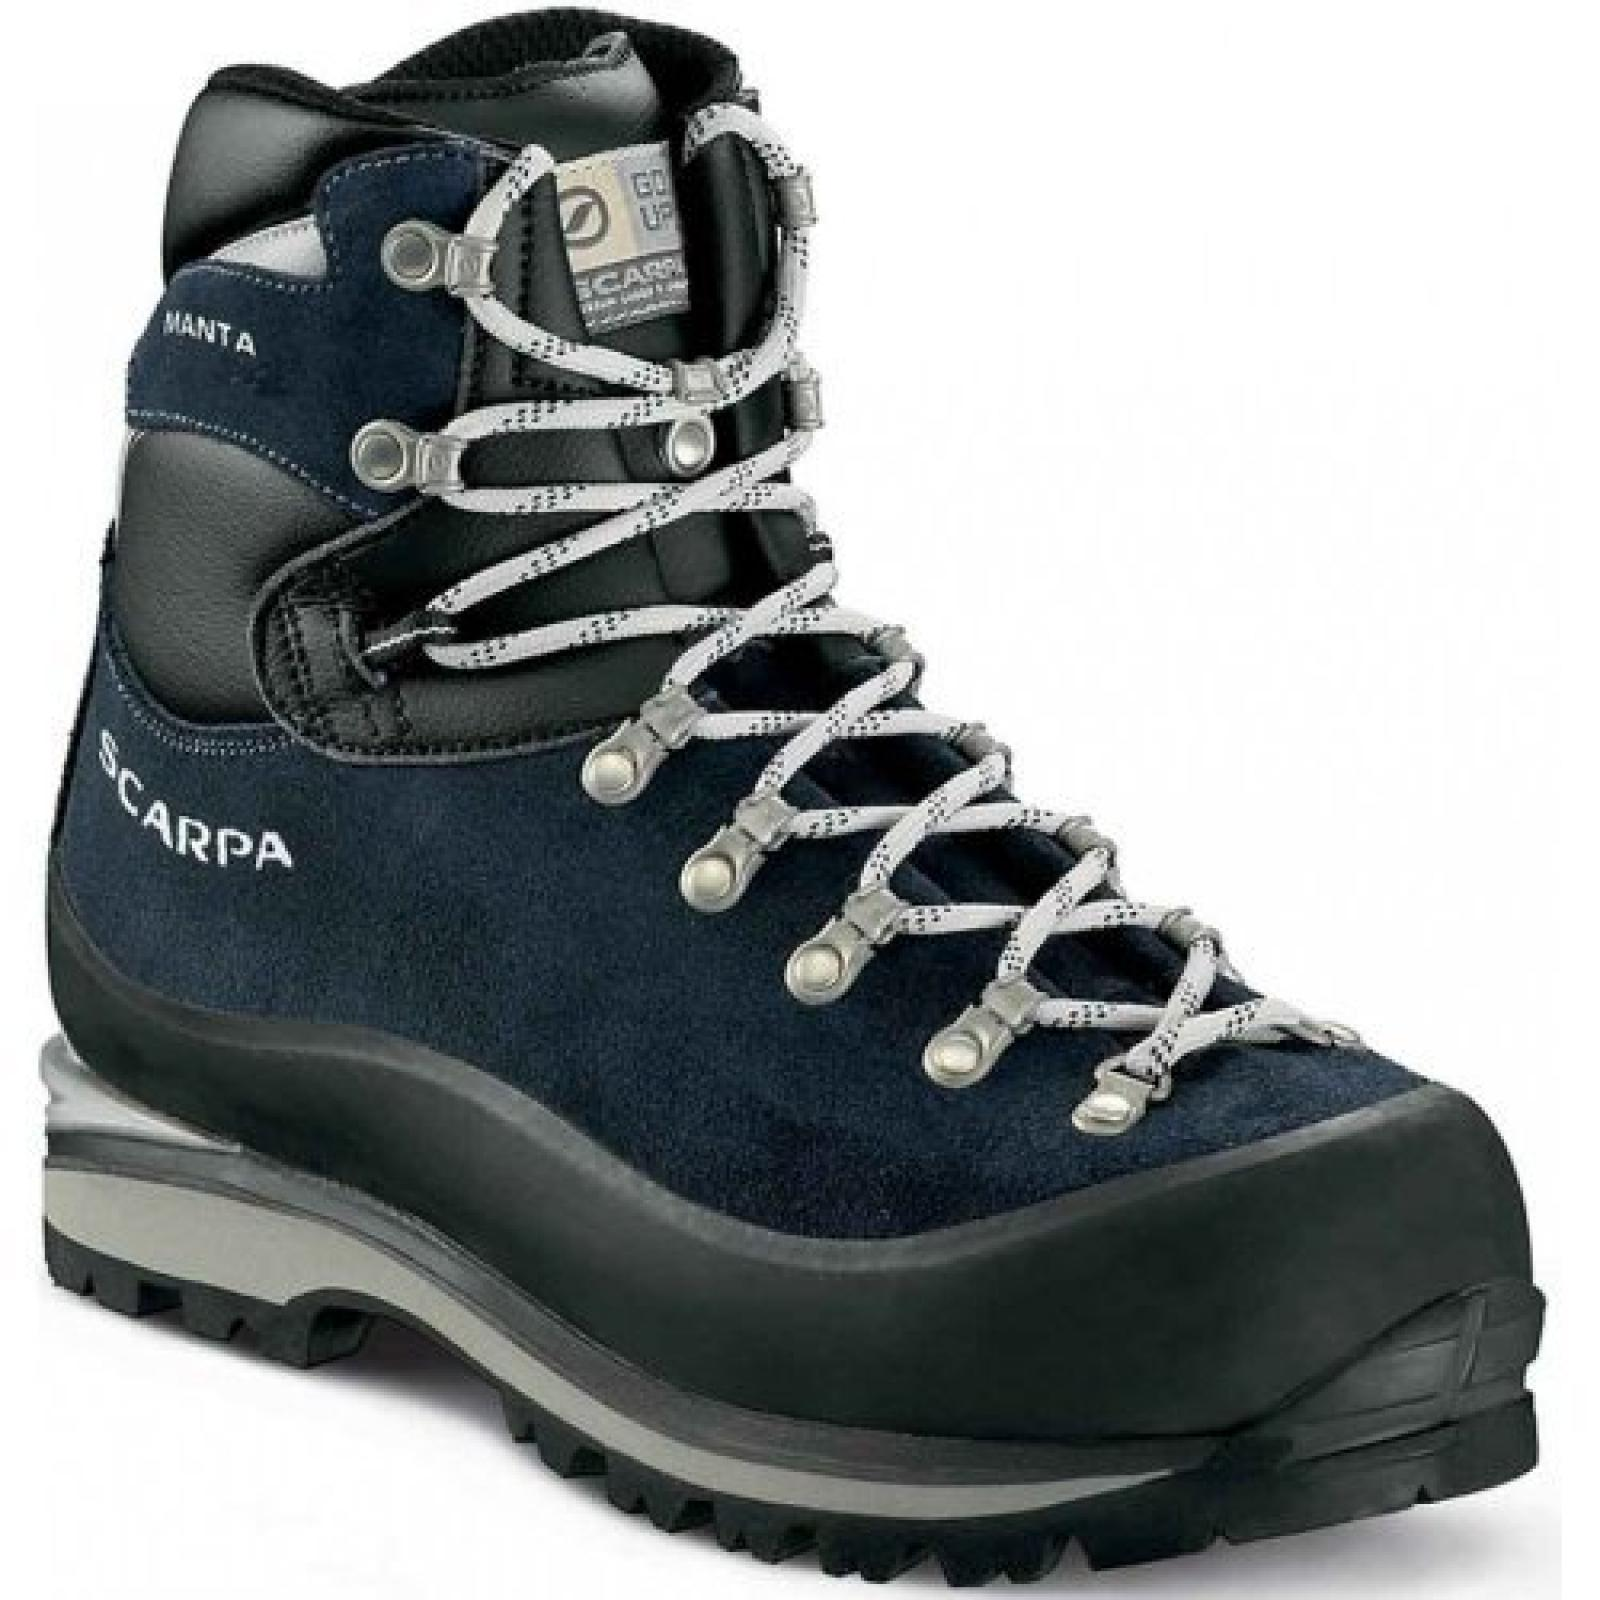 Manta Mountaineering Boots - size: 42 EU - Colour: Navy